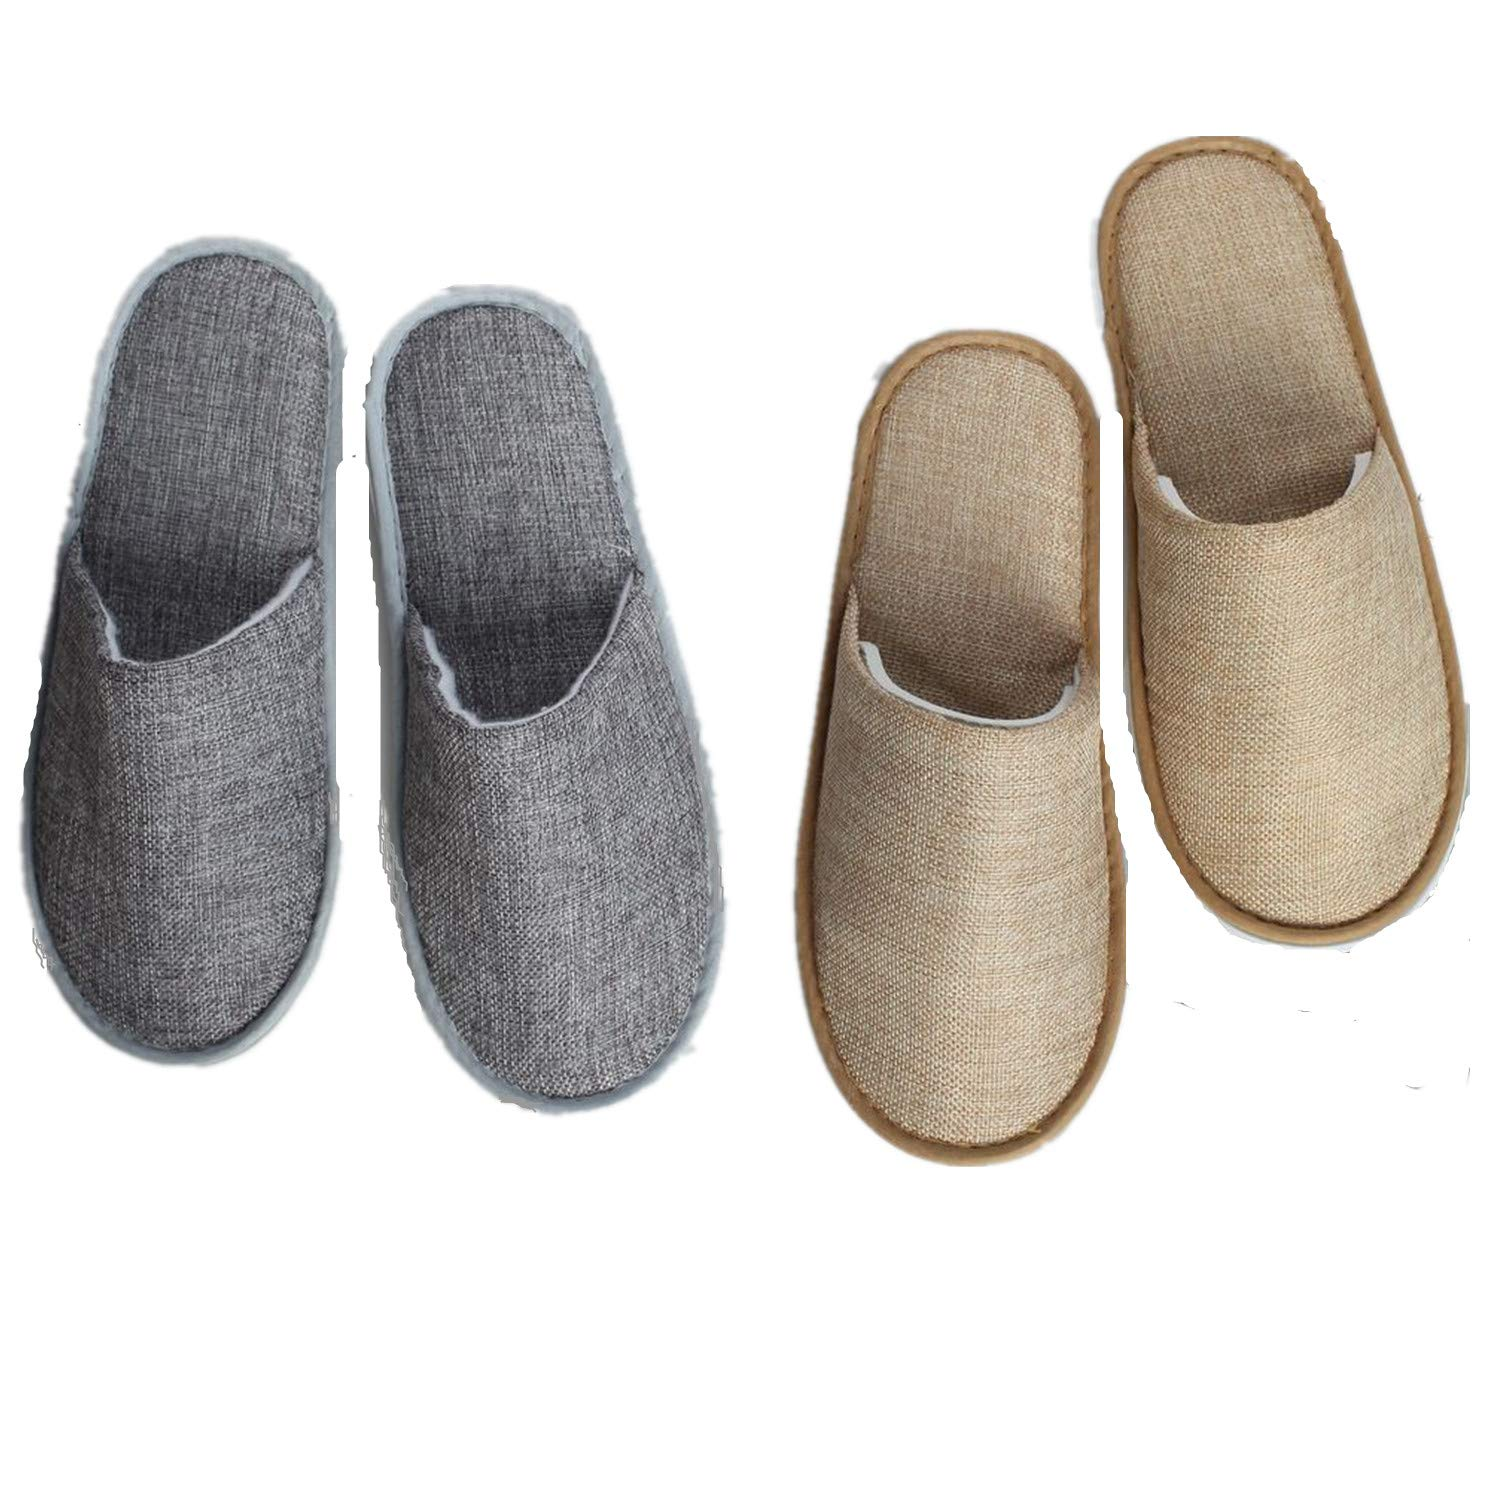 6 Pair of Spa Slippers,Linen Casual Slippers, Closed Toe Spa Slippers for Men and Women,Non-Slip Slippers for Hotel, Home, Guest Use (3 pairs yellow + 3 pairs gray)